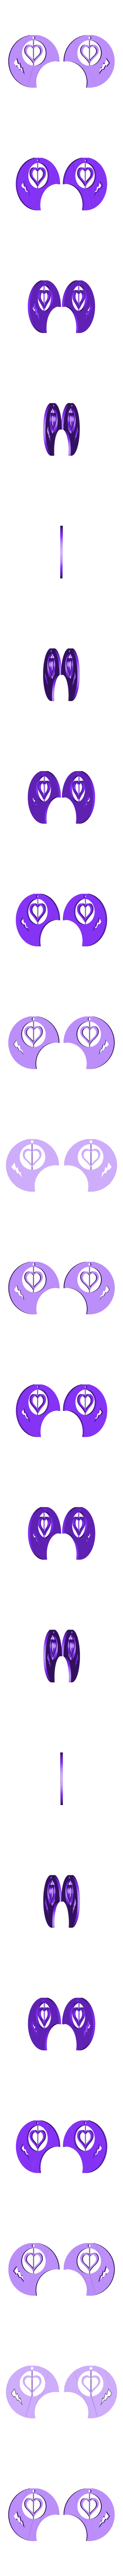 boucle d'oreille rond coeur fine.stl Download free STL file earring round heart • 3D printing template, catf3d